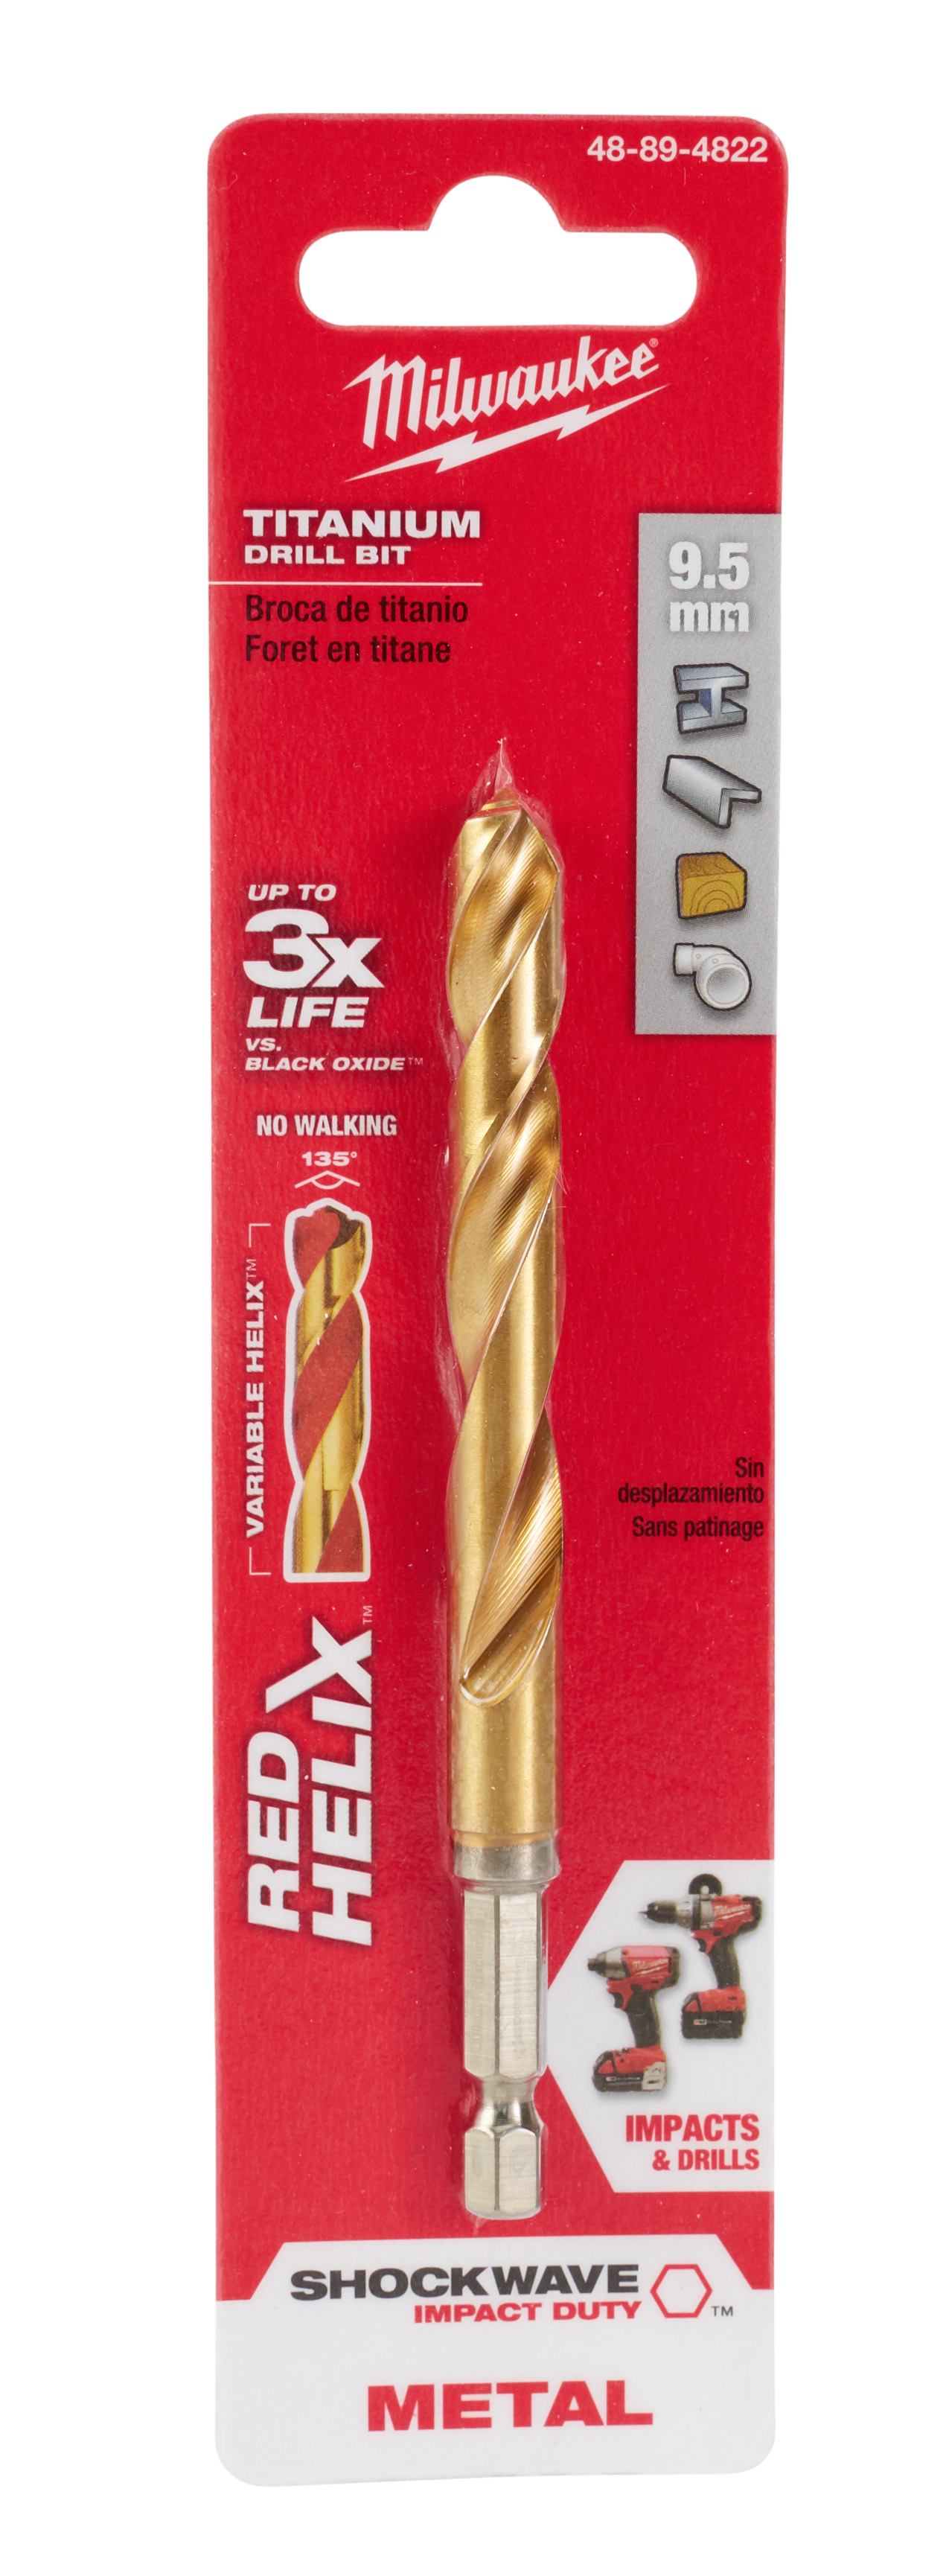 Milwaukee® SHOCKWAVE™ RED HELIX™ 48-89-4822 Hex Shank Impact Drill Bit, 9.5 mm Drill - Metric, 0.374 in Drill - Decimal Inch, (2